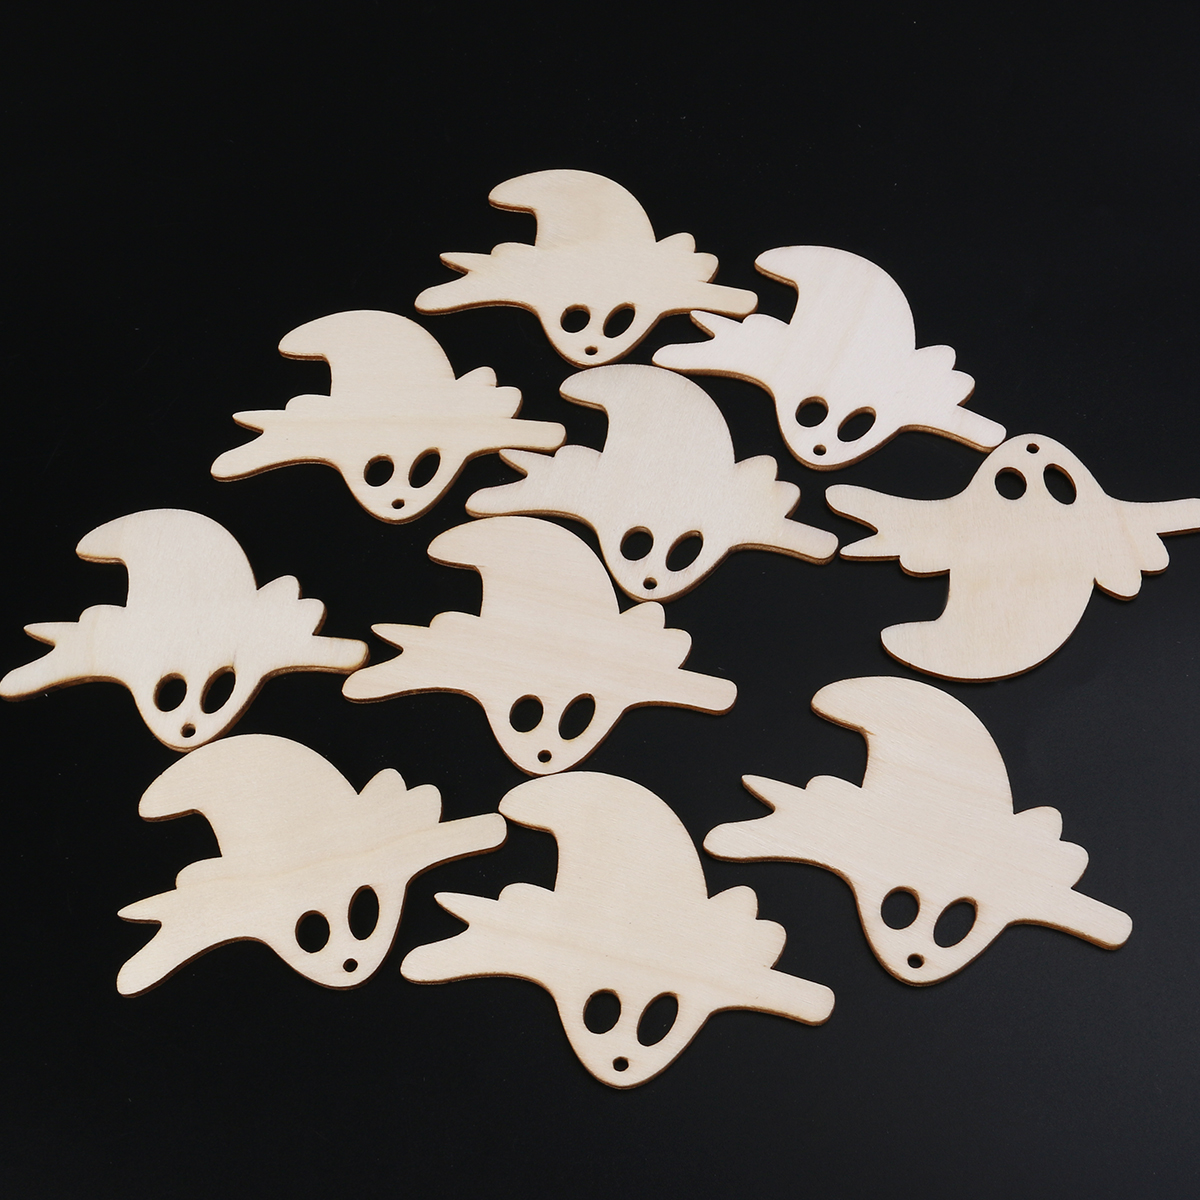 10pcs Wooden Embellishments Halloween Decoration Flying Ghost Pattern  Pendant For Hangers Tags Cardmaking Sign Making(